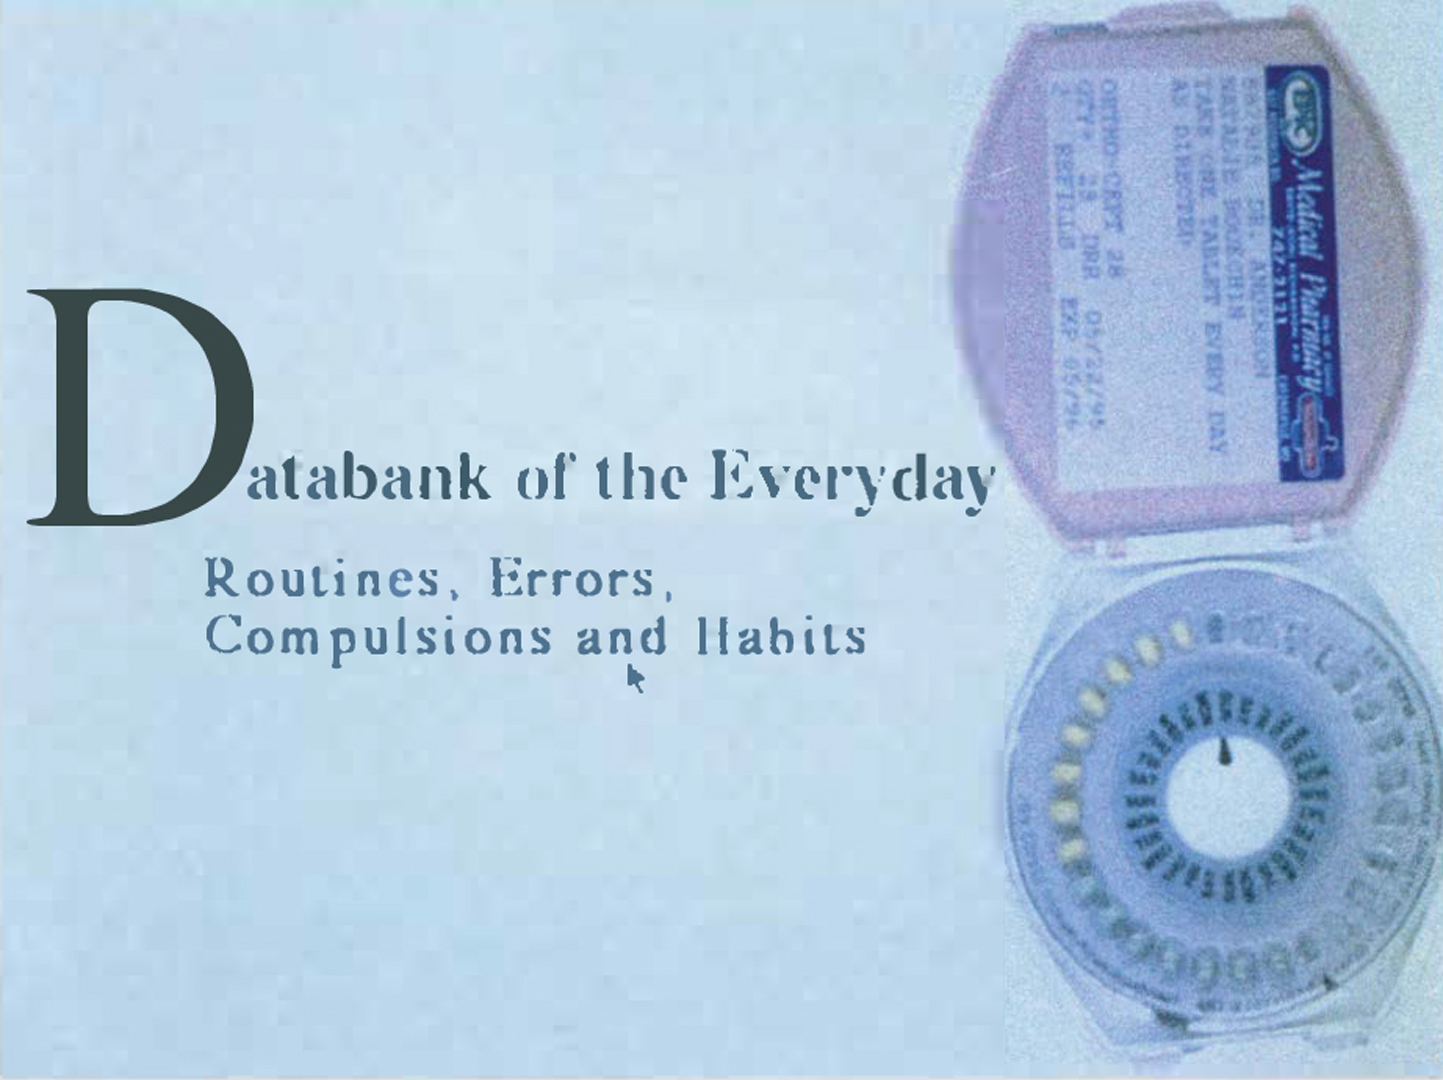 ©1996, Natalie Bookchin, Databank of the Everyday